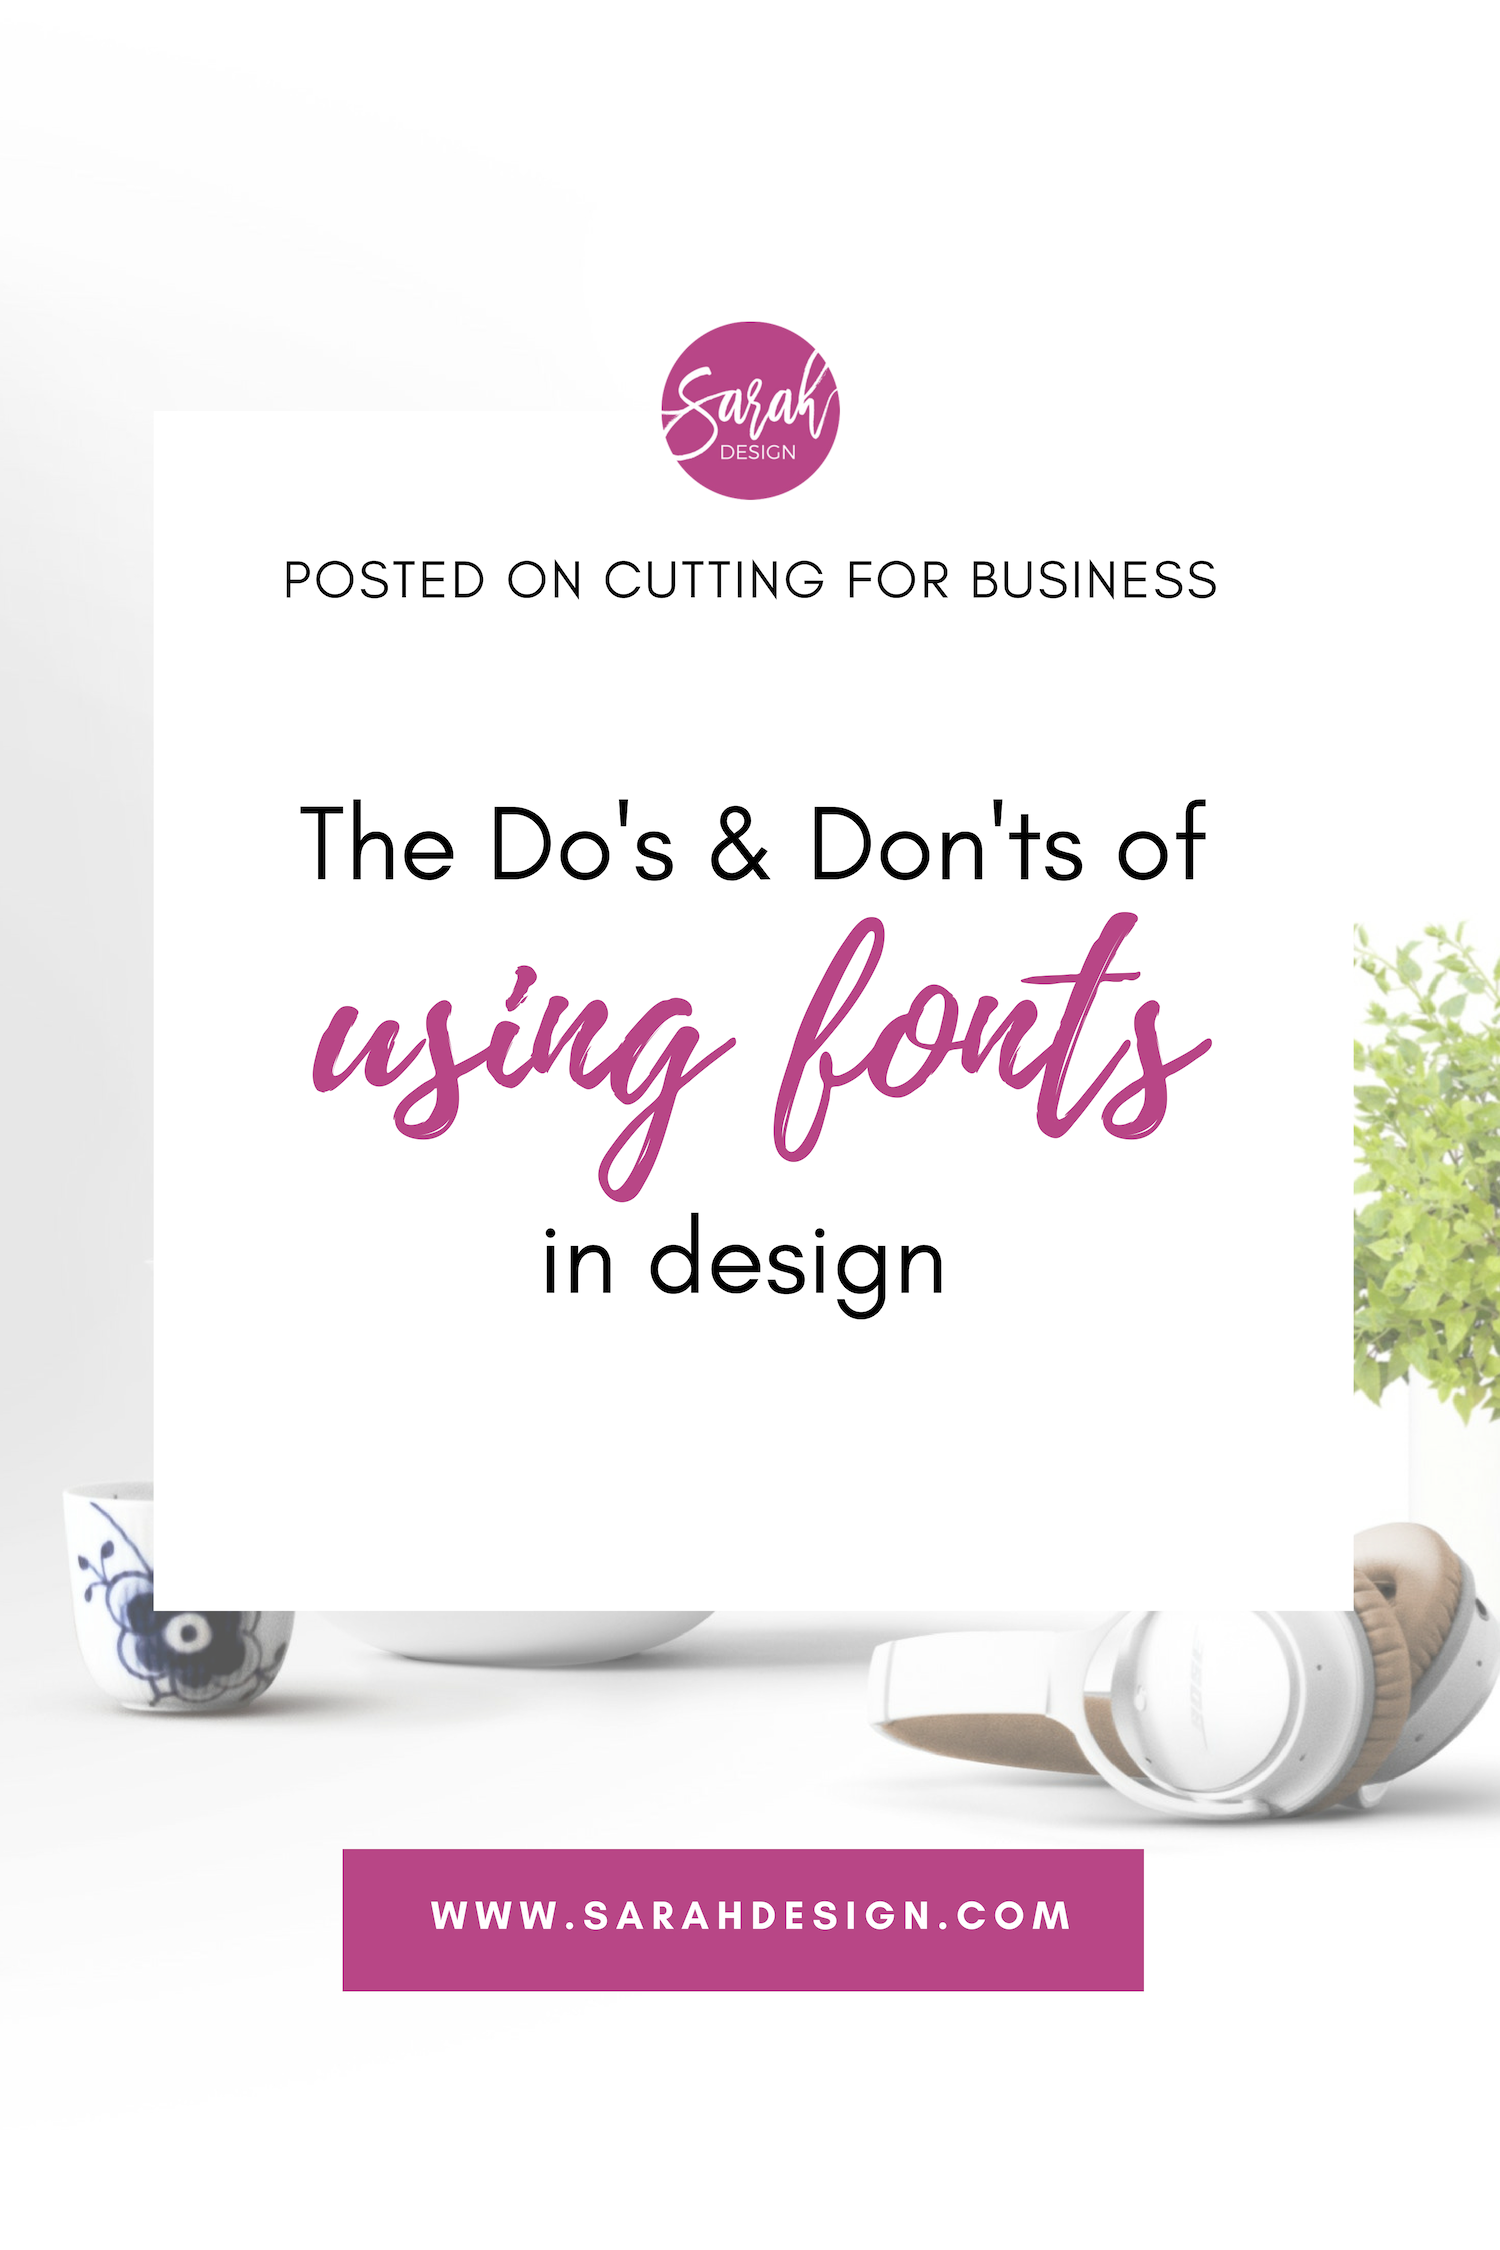 The Do's and Don'ts of using fonts in design - guest post by SarahDesign.com for Cutting For Business Blog.